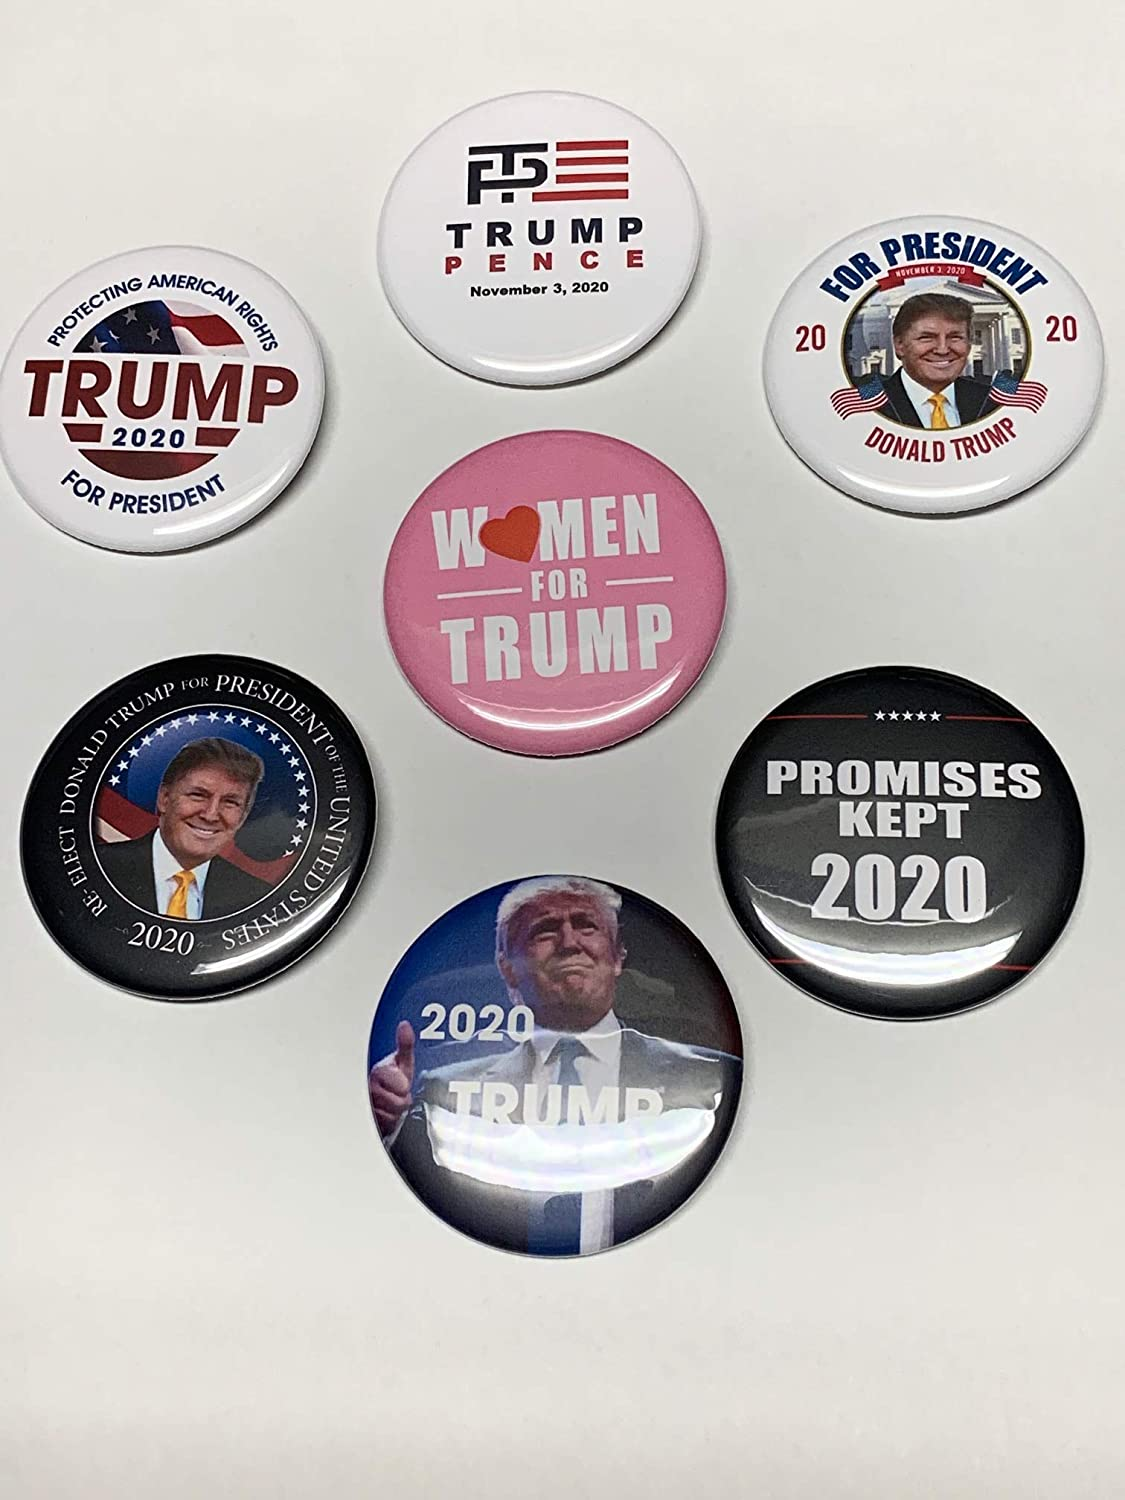 Trump 2020 Campaign Buttons 6 Pack Bonus Save money Jacksonville Mall Women for FREE +